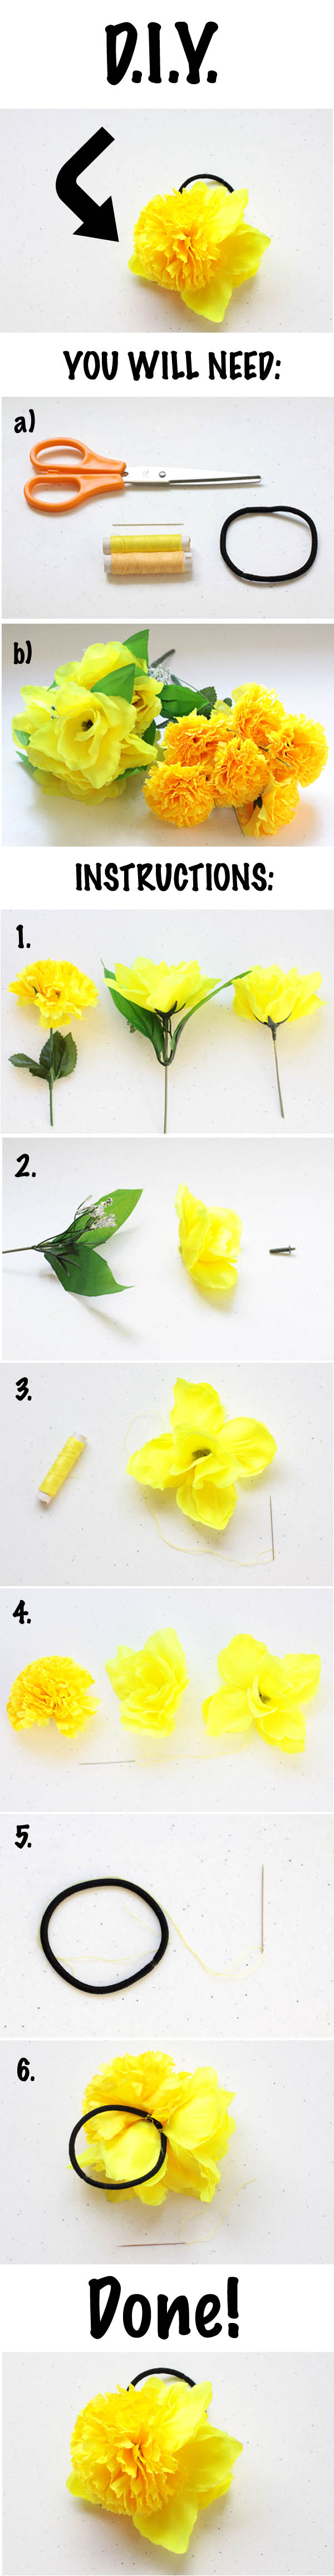 Diy fabric flower hair tie numbers